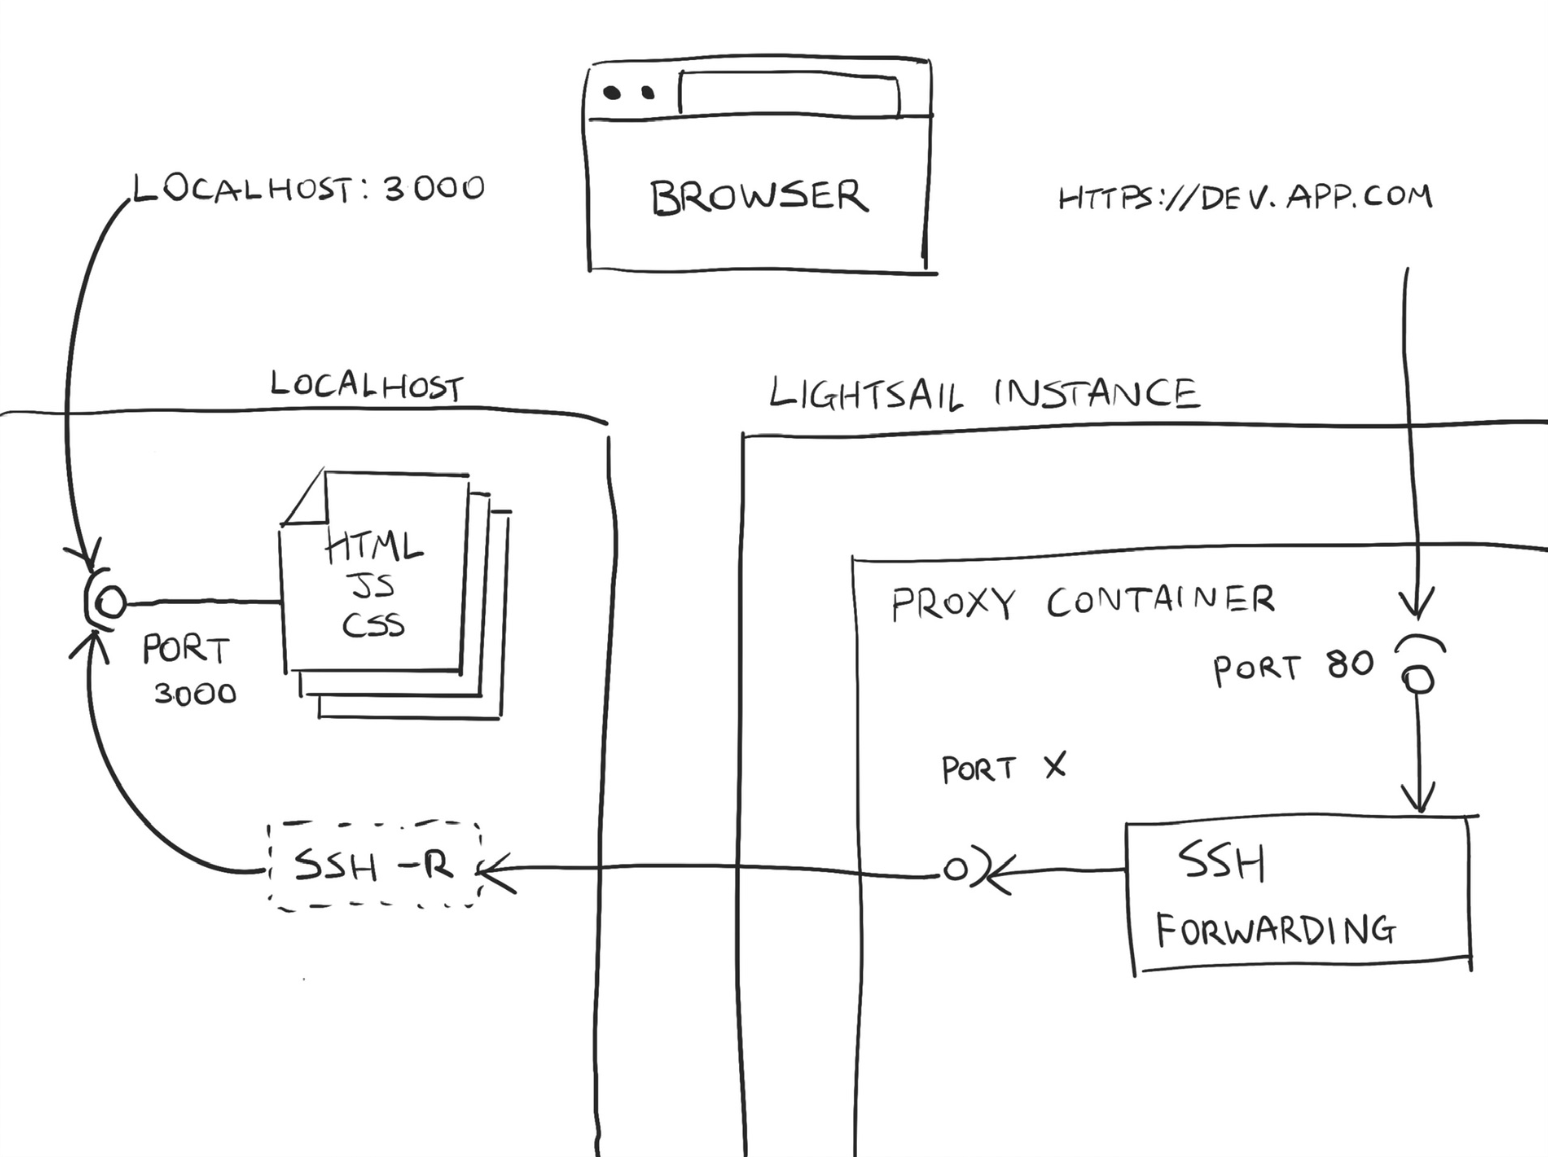 Diagram of how an SSL reverse proxy works with SSH tunneling